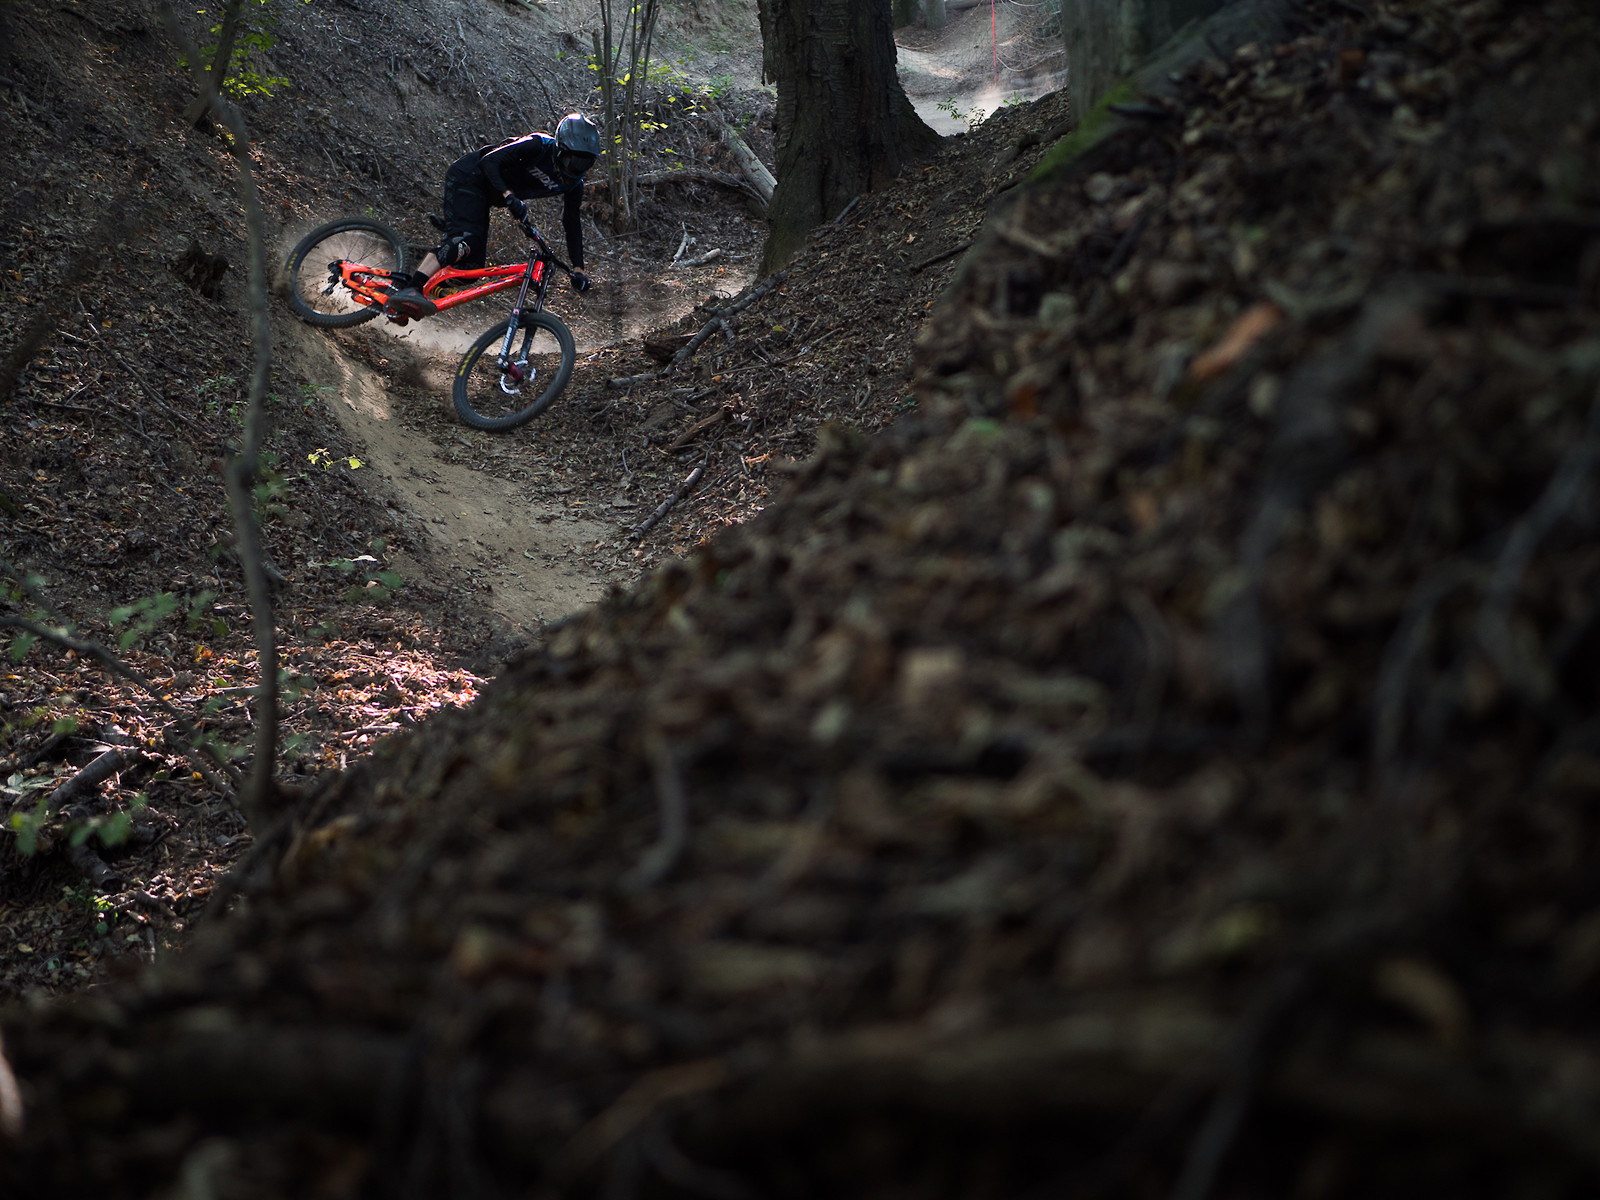 Slide it - EWIA - Mountain Biking Pictures - Vital MTB